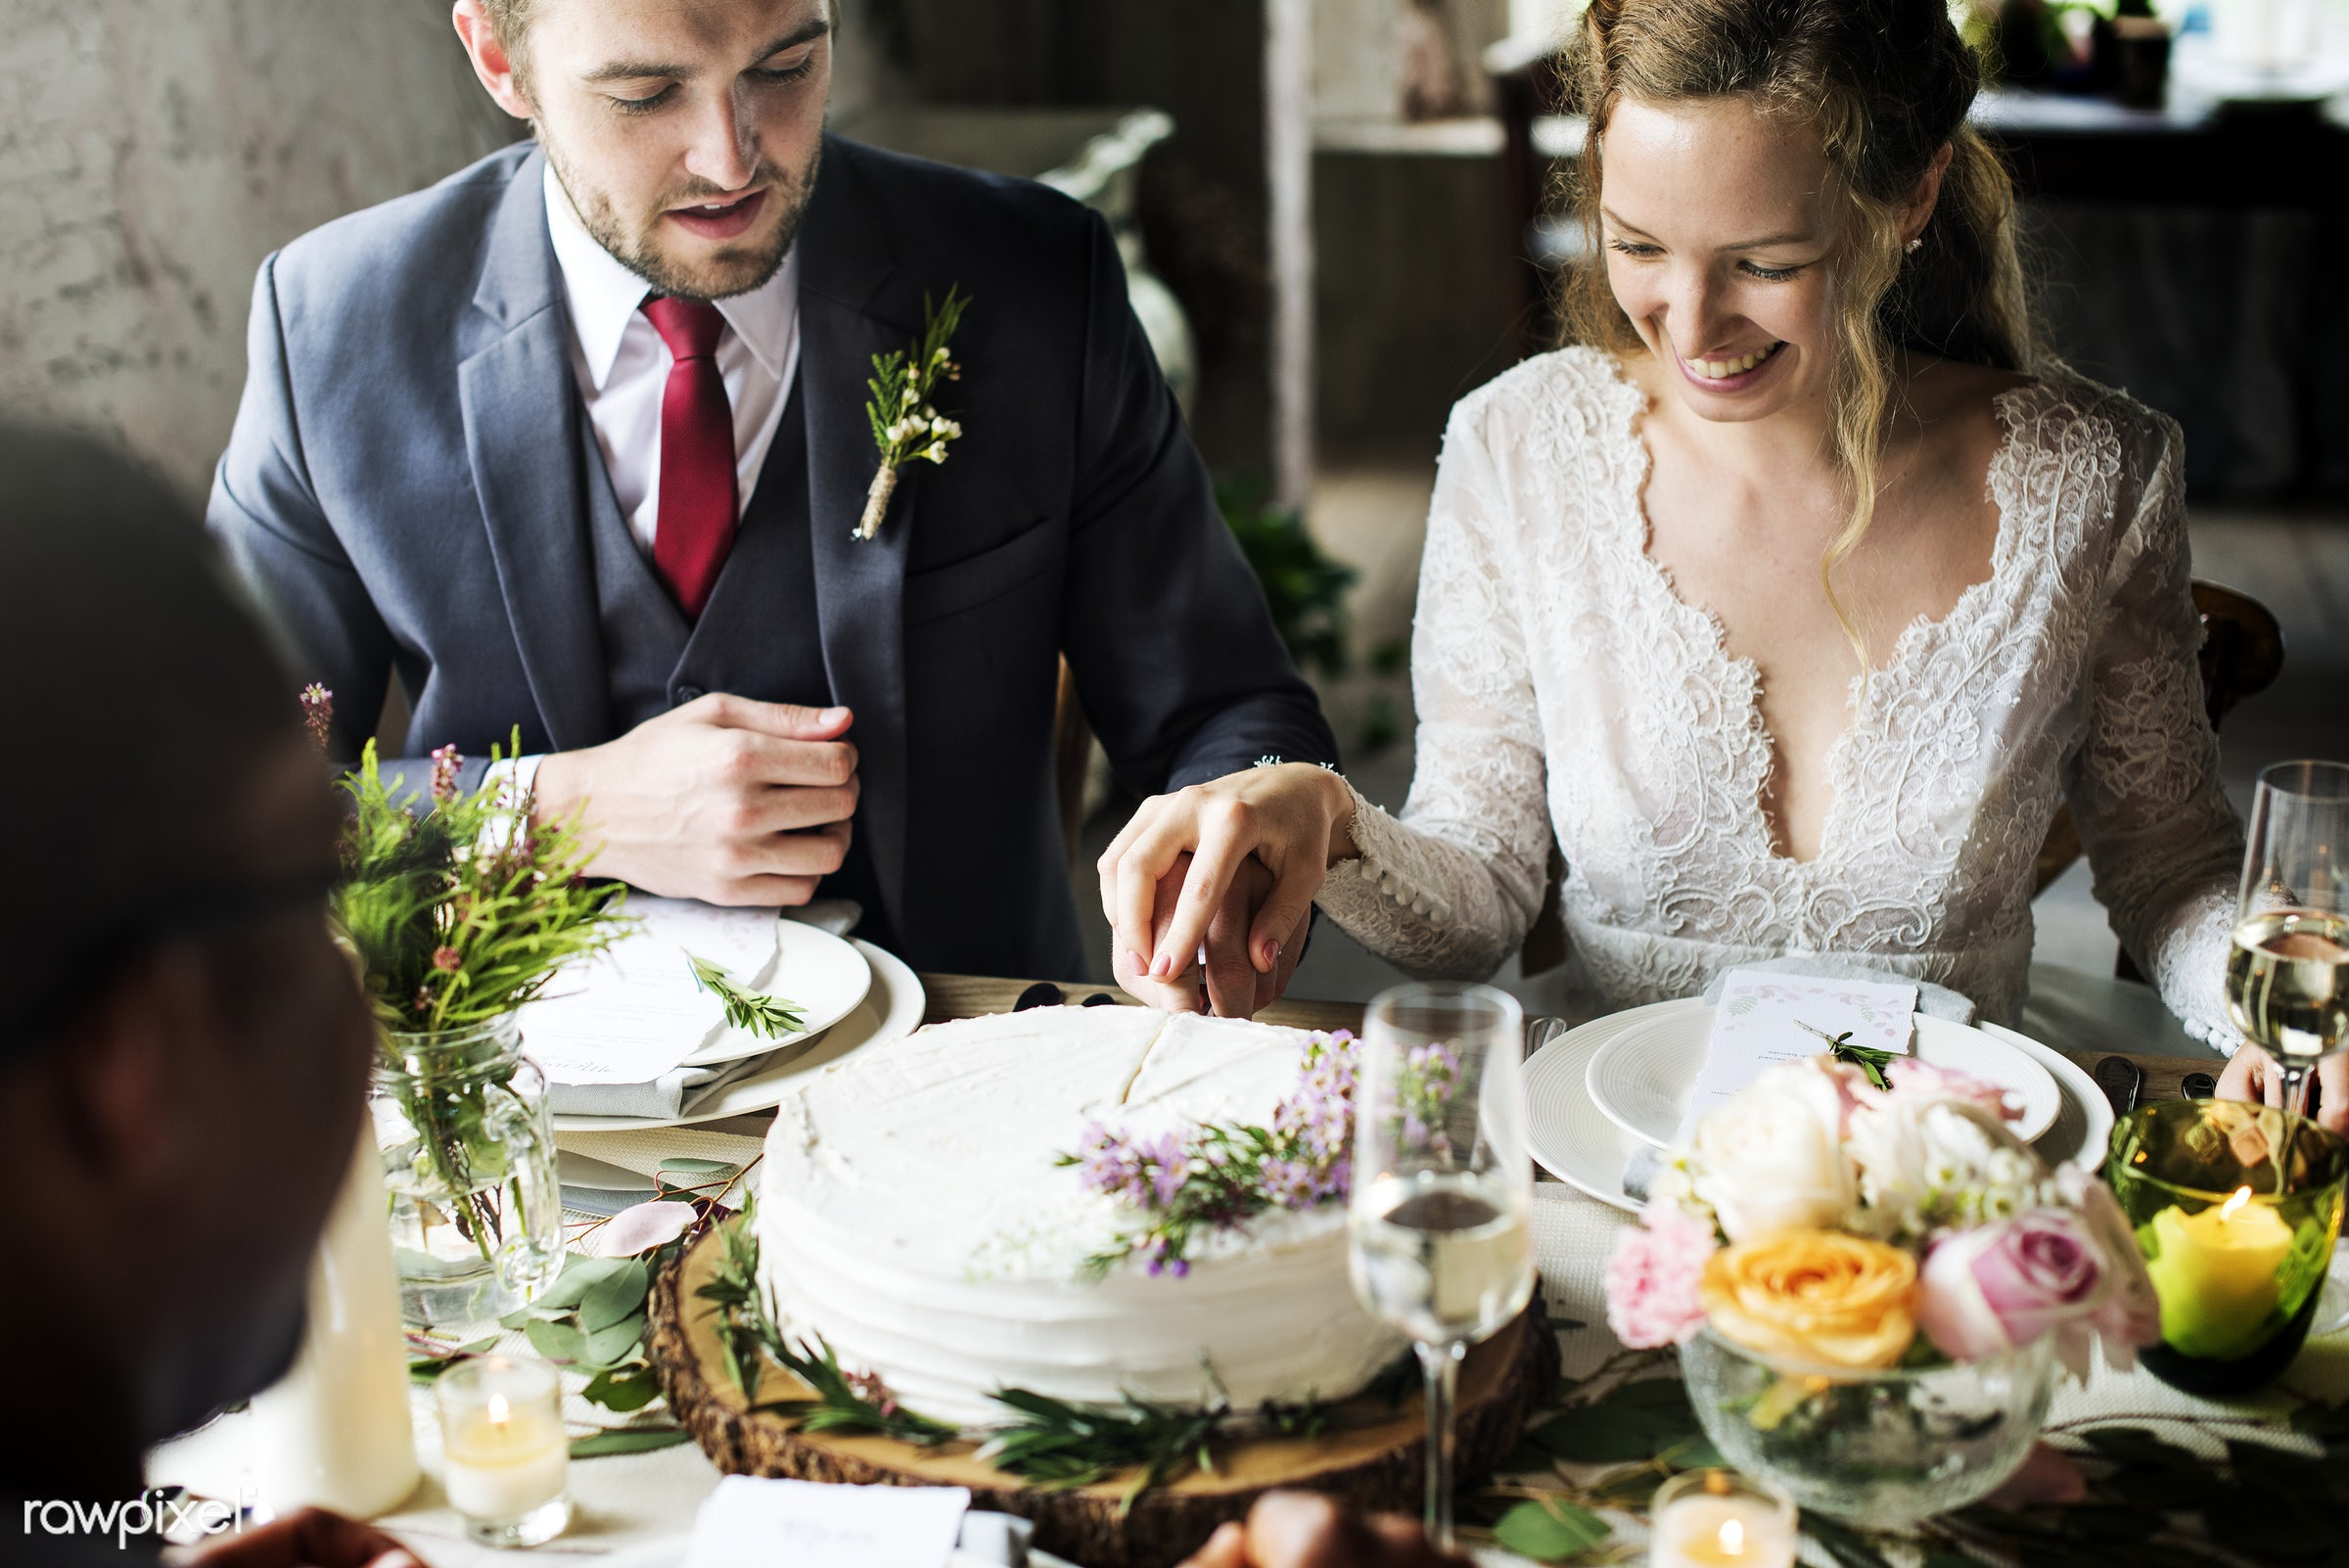 expression, person, smitten, people, together, love, married, friends, family, event, woman, gathering, cheerful, cake,...